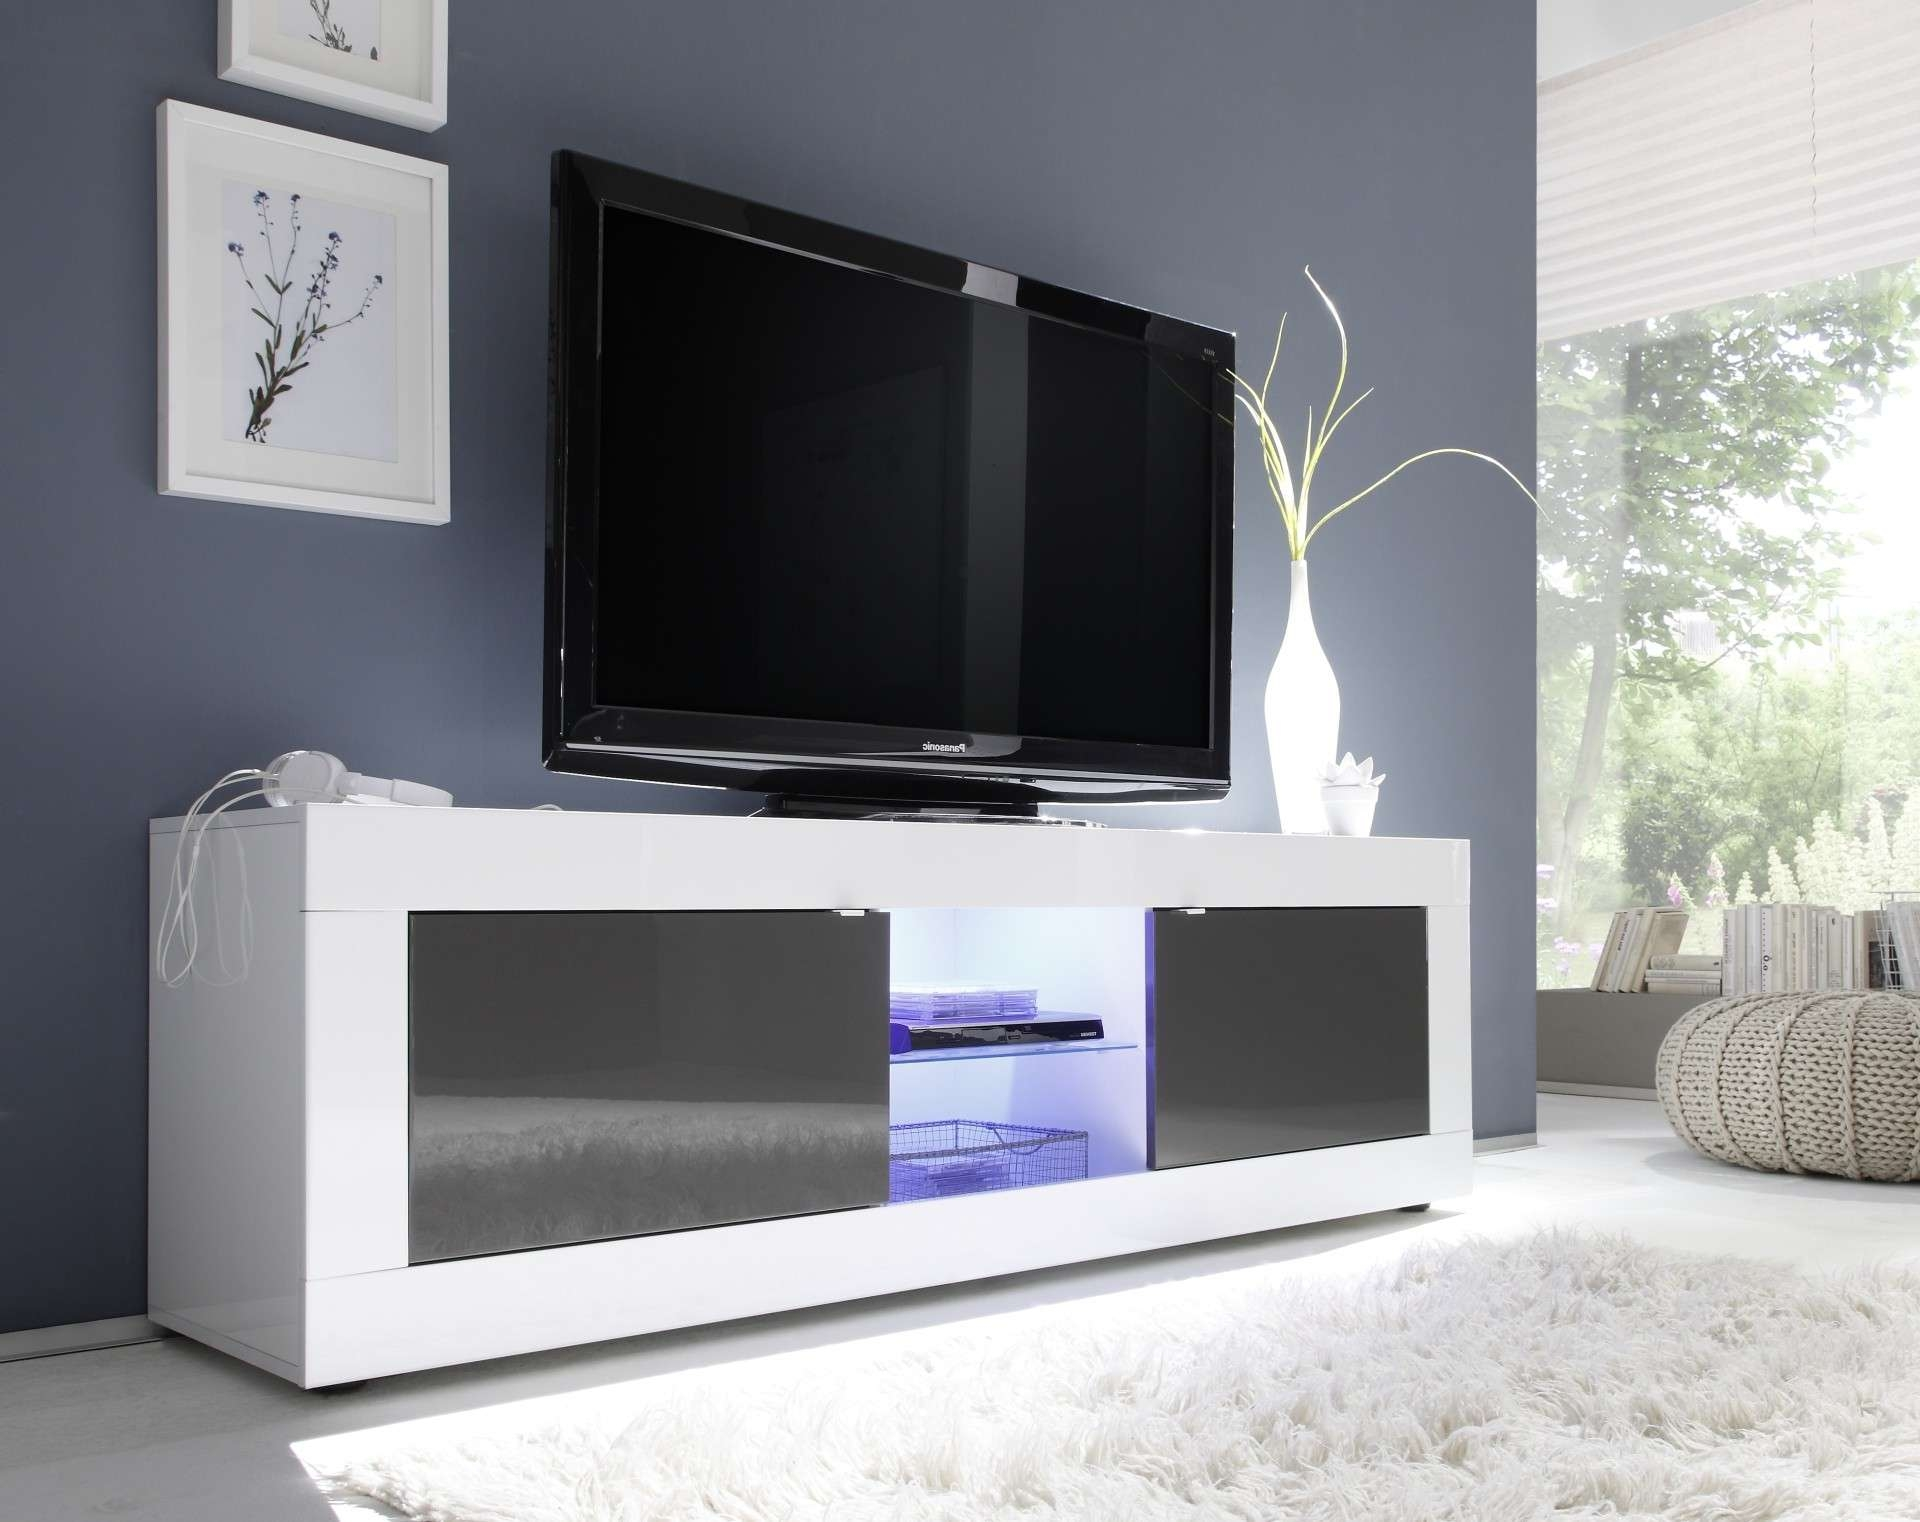 Fancy Tv Stands For 65 Inch Tvs 47 For Modern Home Decor In Fancy Tv Stands (View 5 of 15)